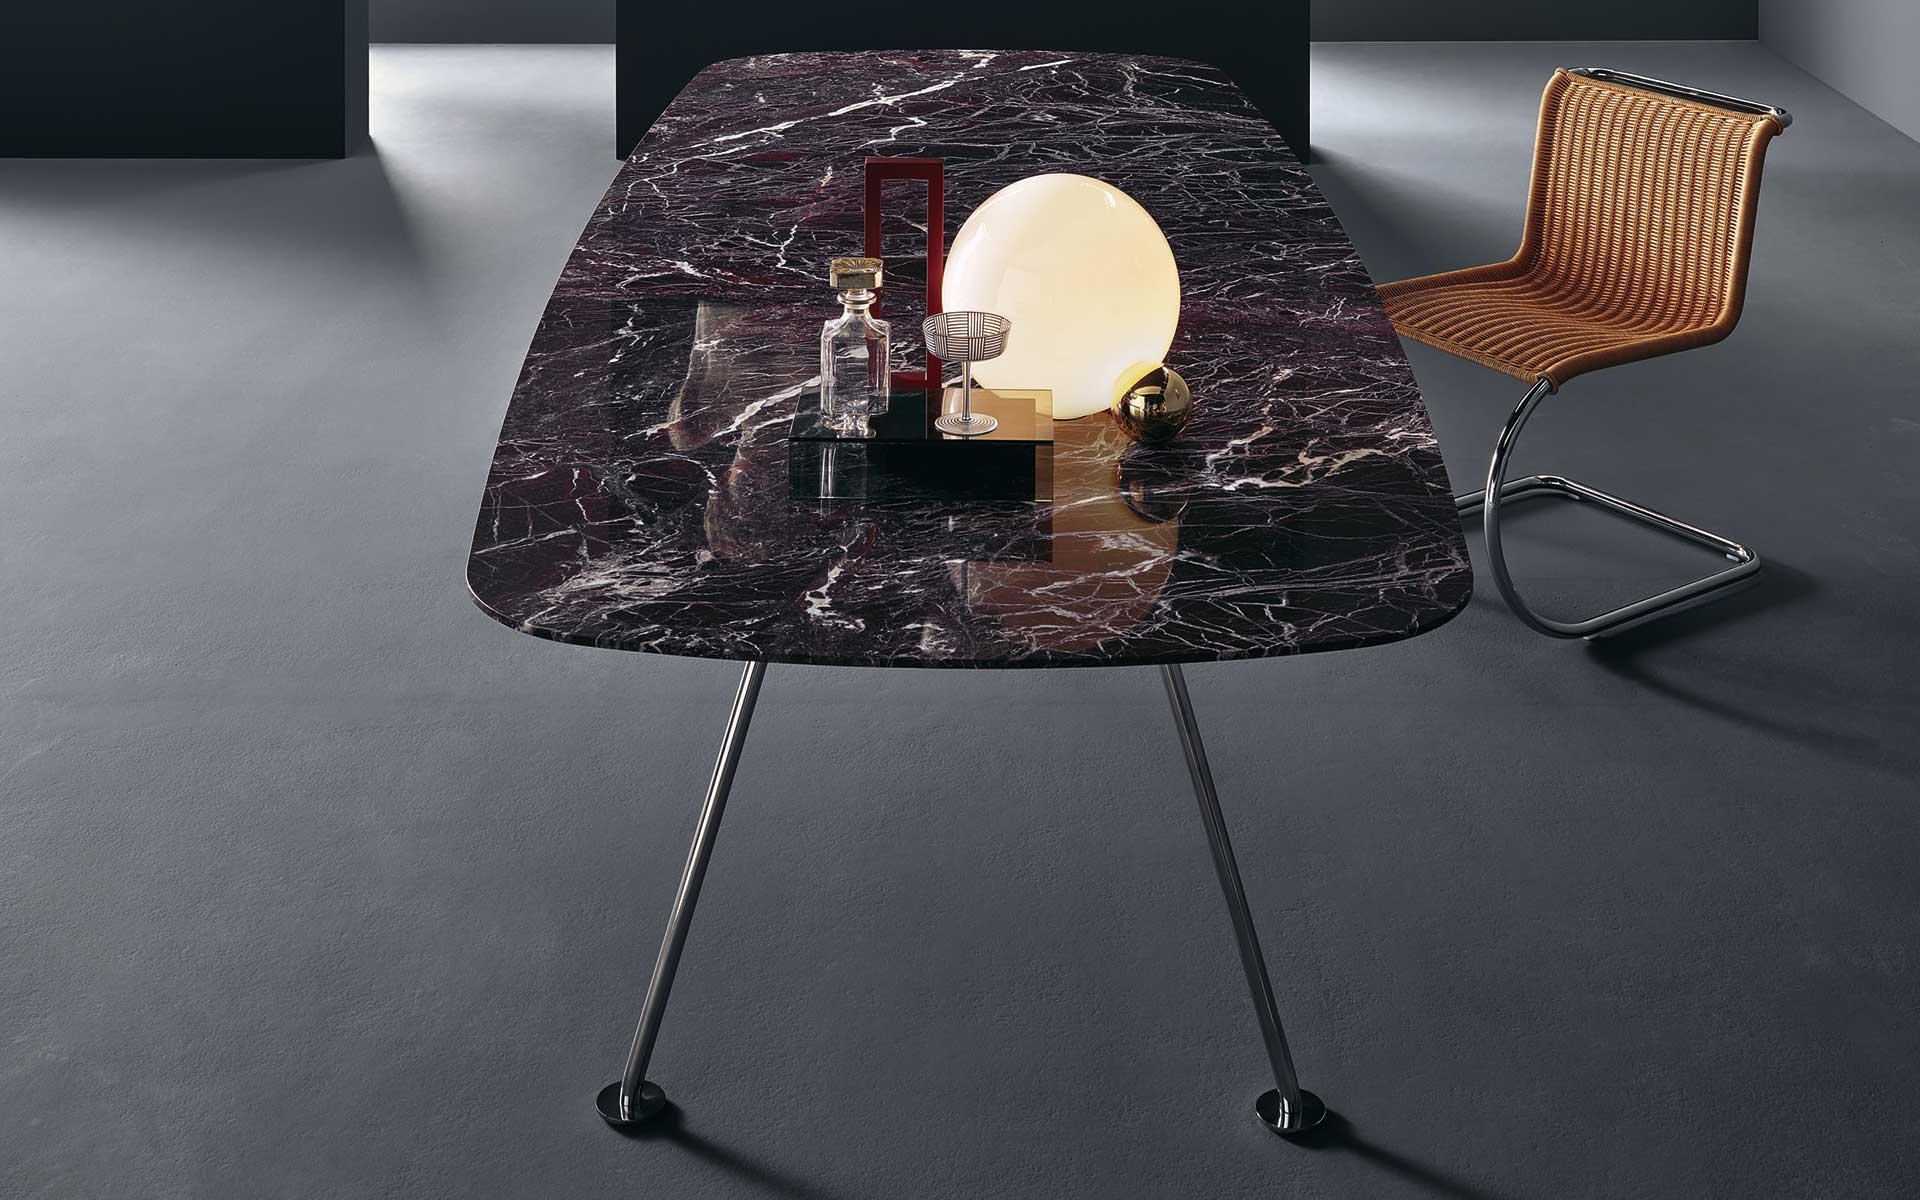 knoll international grasshopper table bei steidten+ berlin+